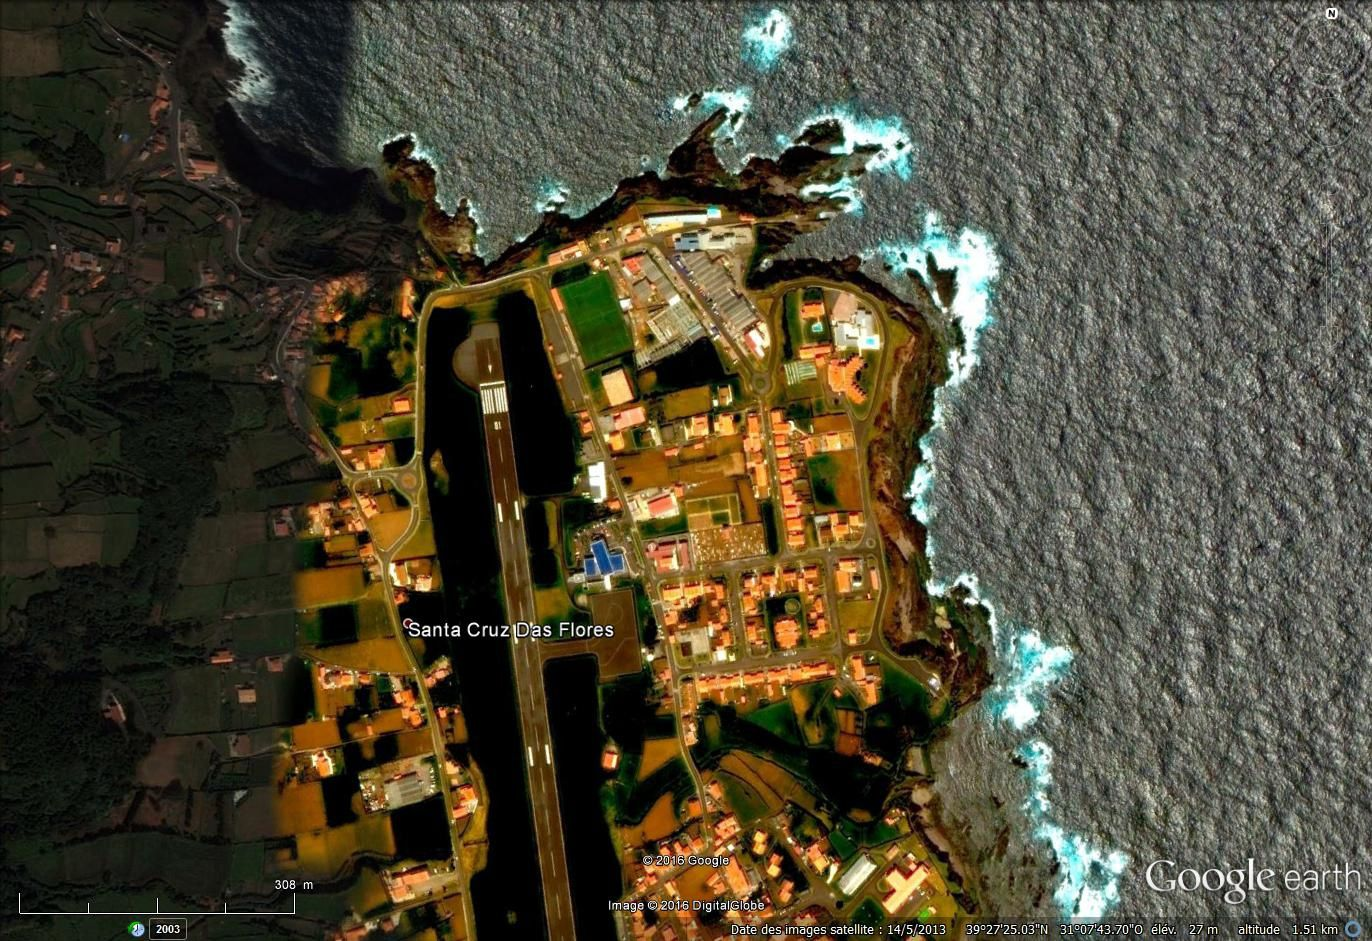 Ile de Florès aux Açores via Google earth